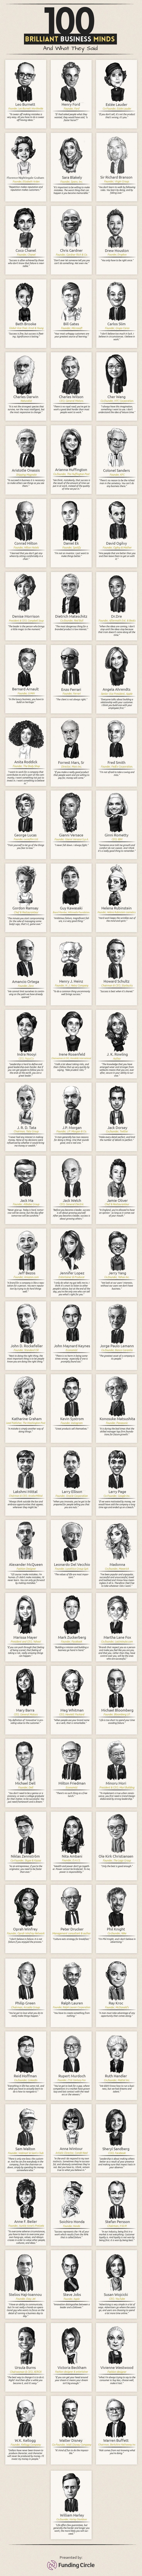 Inspirational Quotes From 100 Famous Business Leaders (Infographic) - @entmagazine: